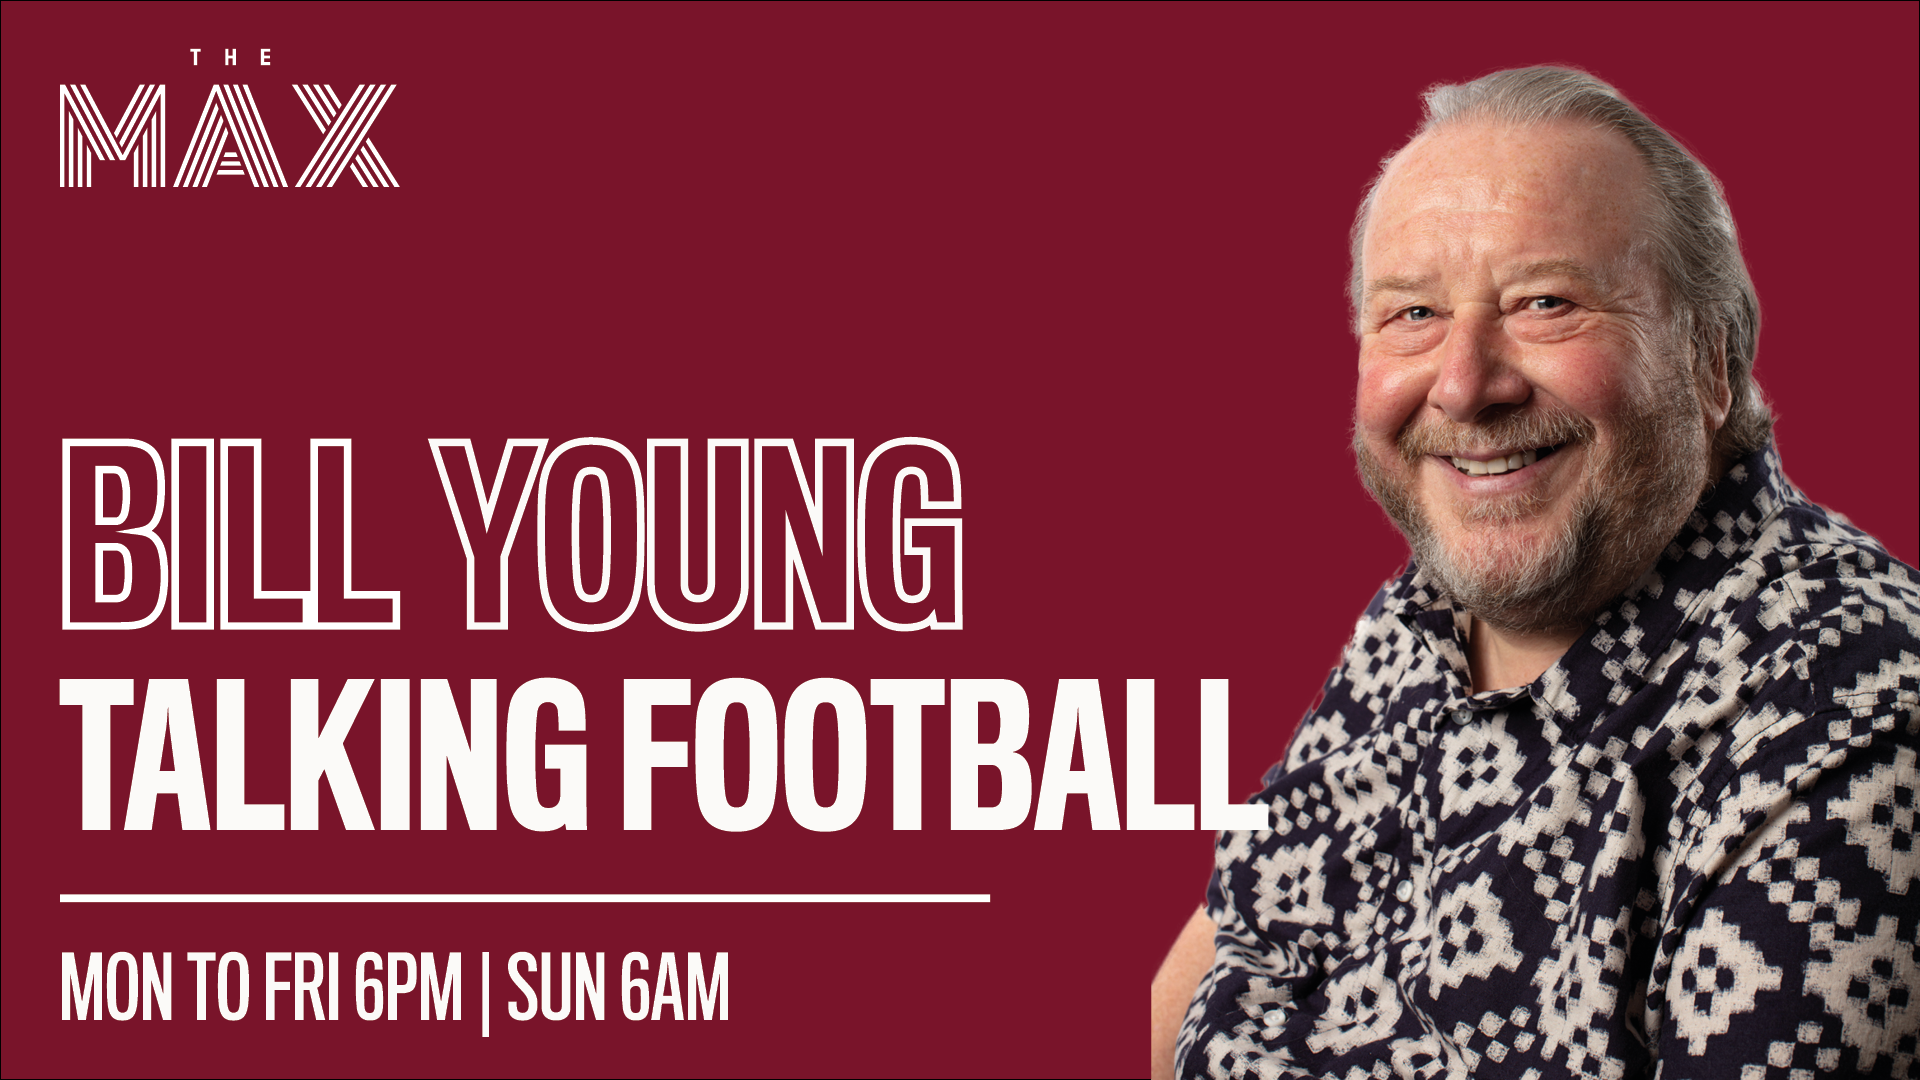 Talking Football with Bill Young - Tuesday 11th May